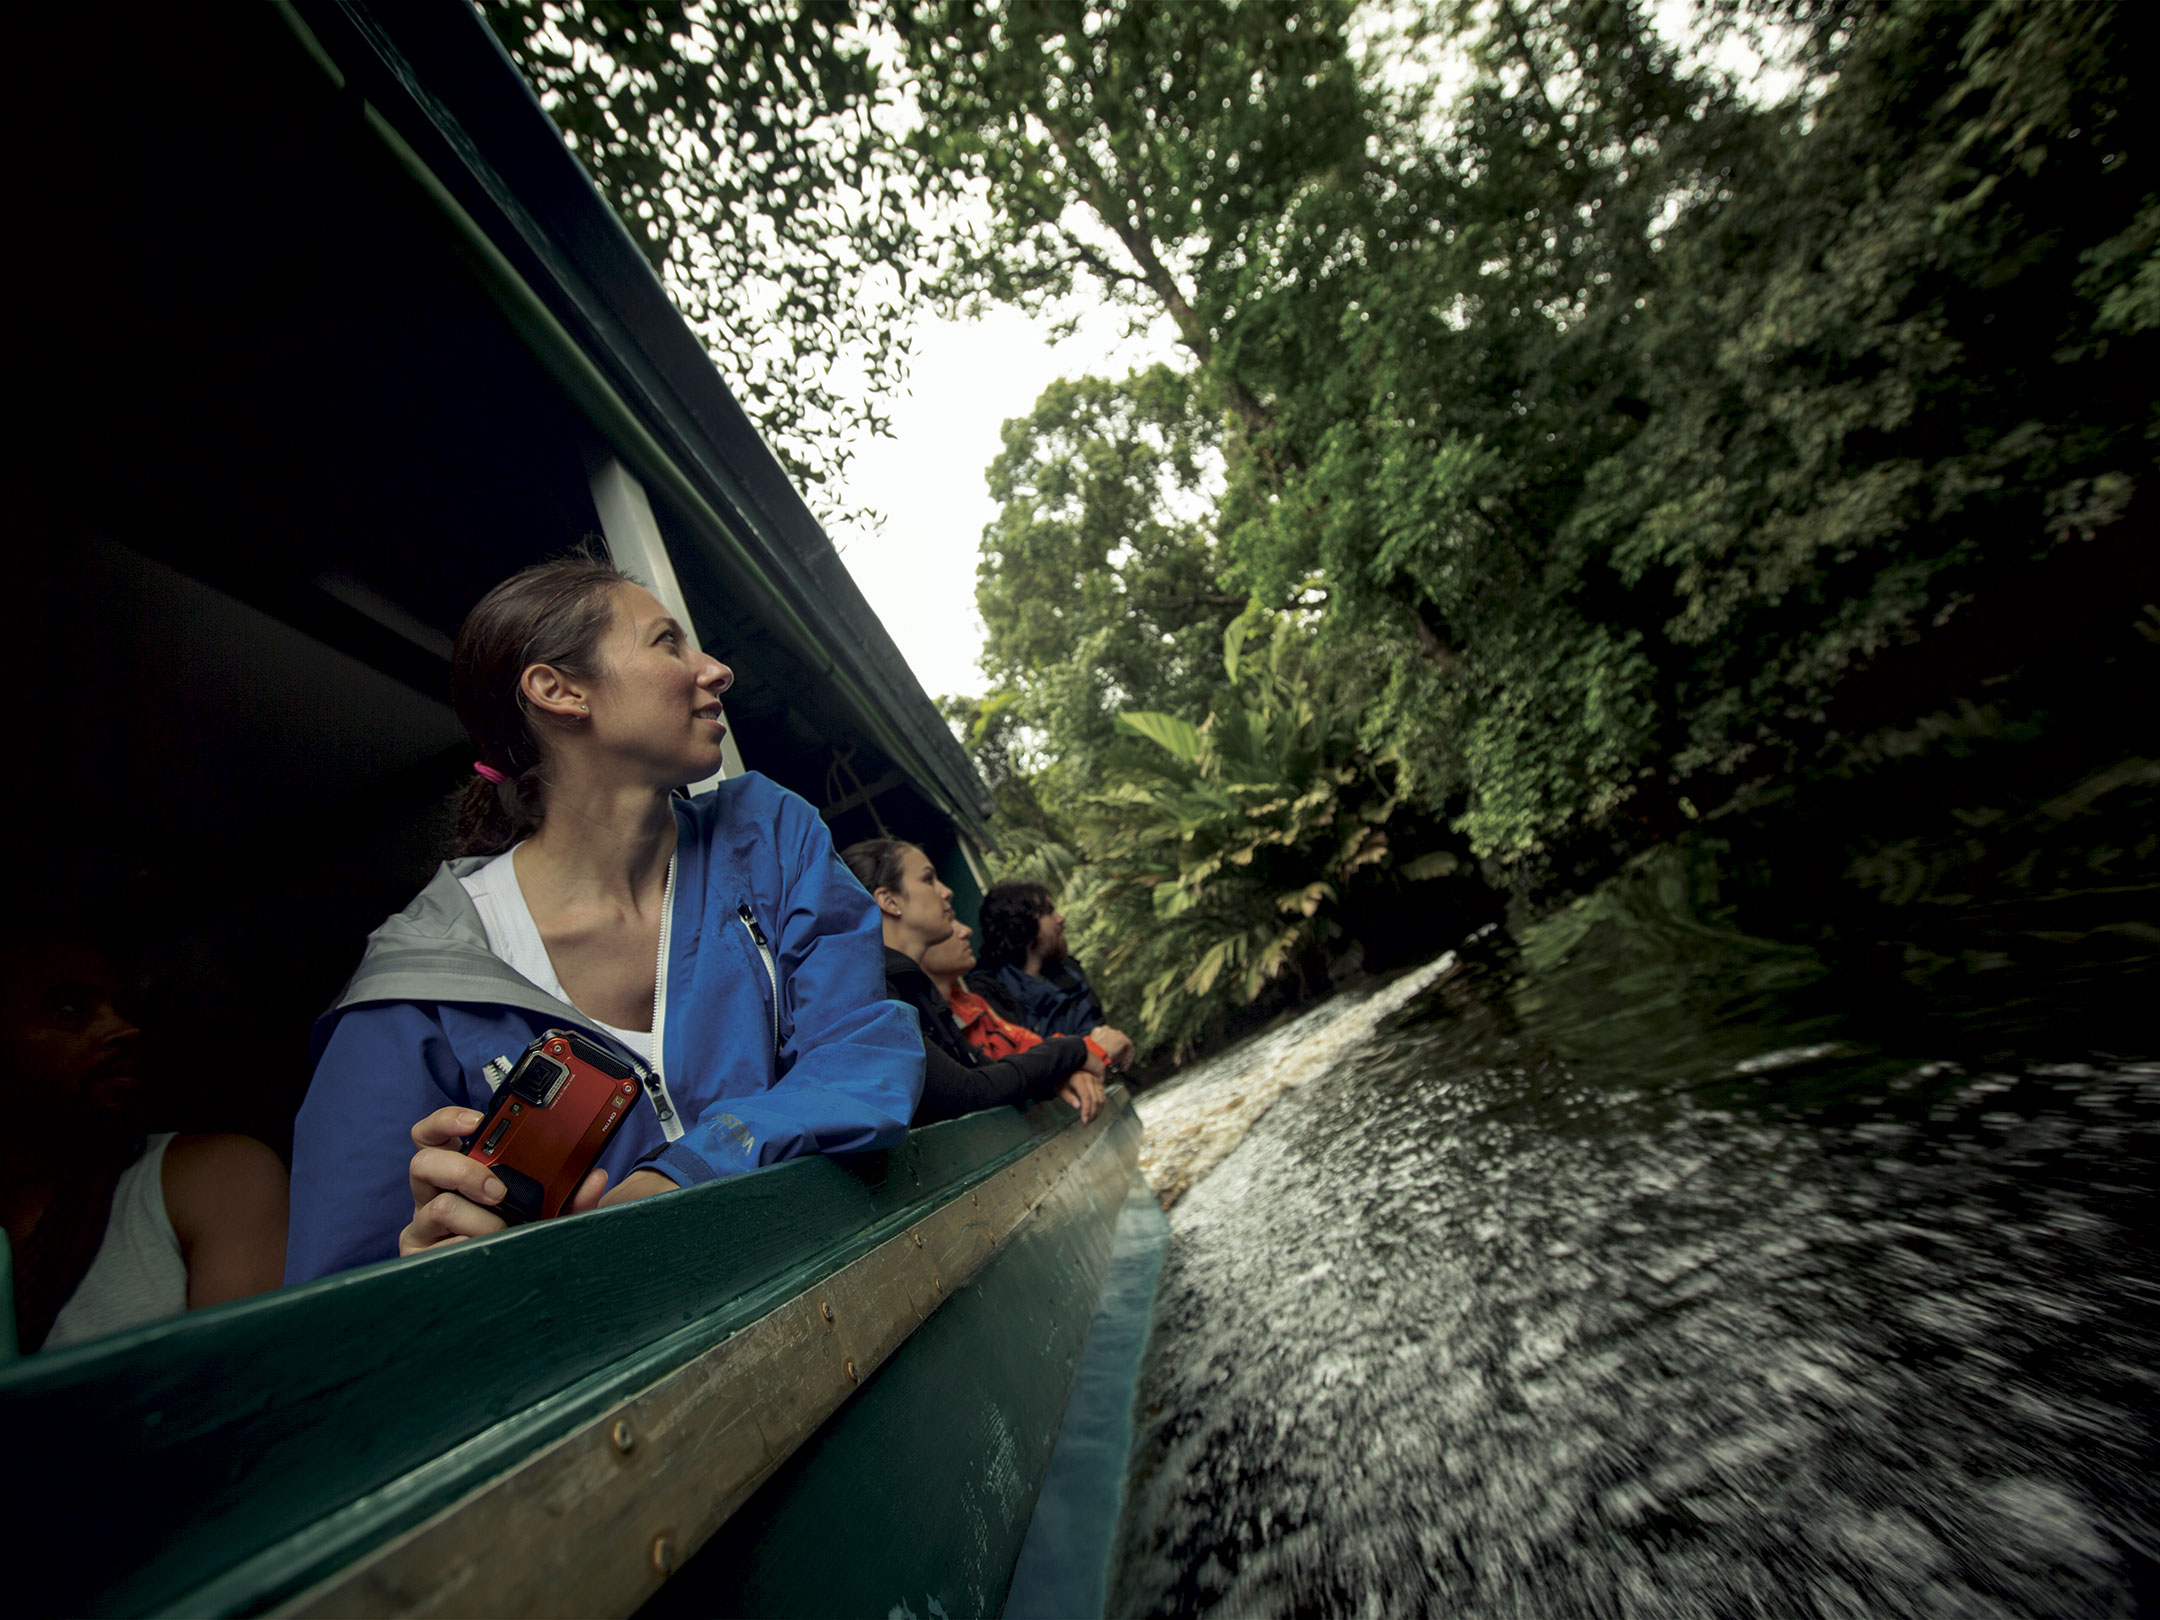 Costa-Rica-Tortuguero-Canal-Boat-Ride-Traveller-Amy